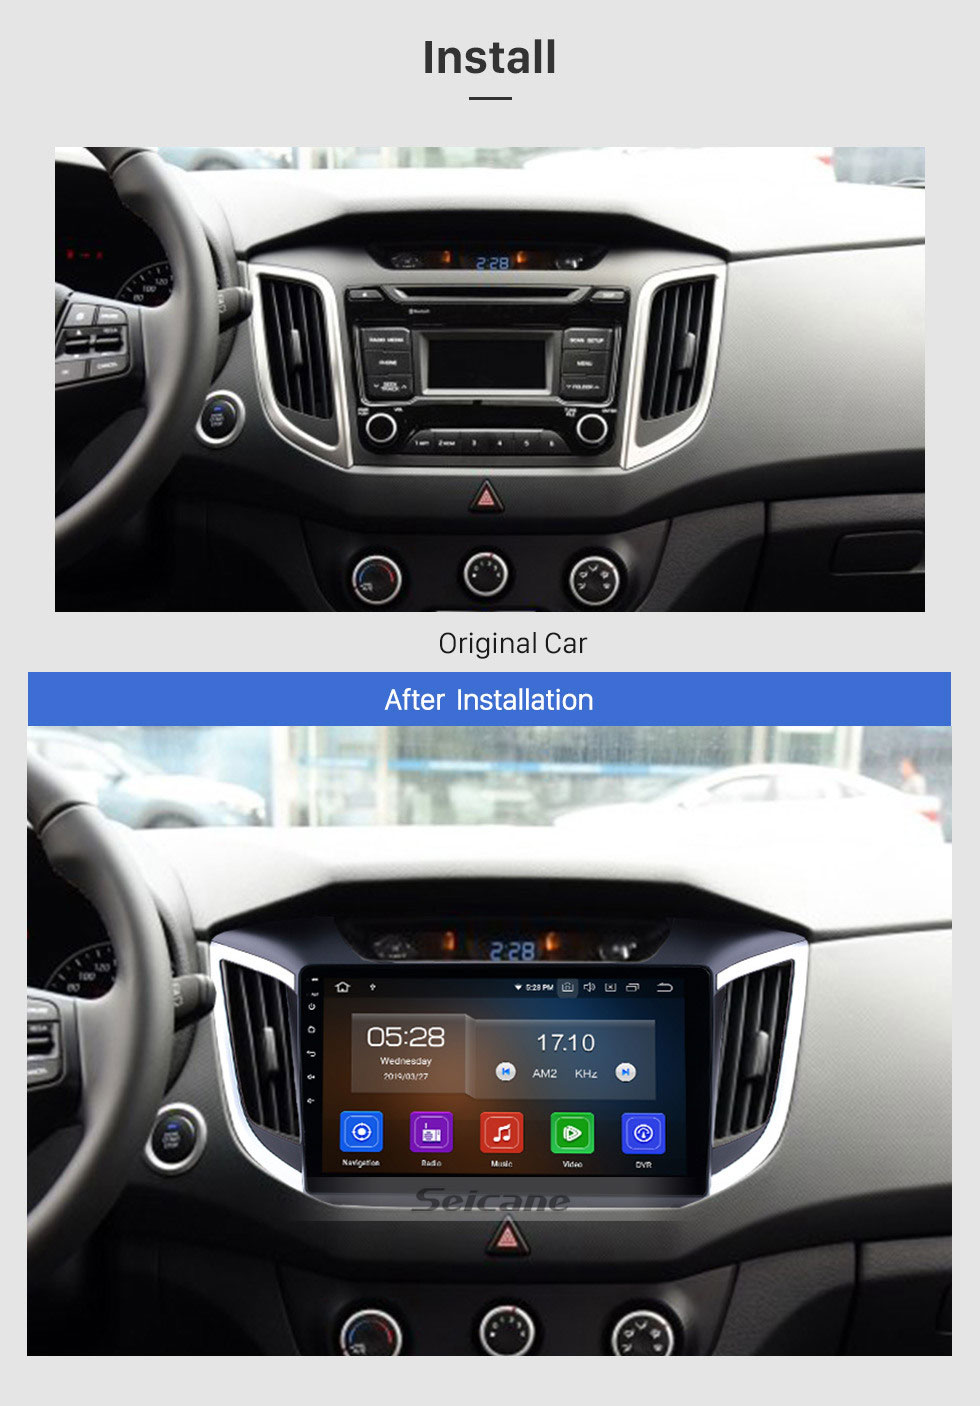 Seicane 10.1 Inch Android 9.0 Radio For 2014 2015 HYUNDAI IX25 Creta with 3G WiFi Bluetooth GPS Navigation system Capacitive Touch Screen TPMS DVR OBD II Rear camera AUX Headrest Monitor Control USB SD Video